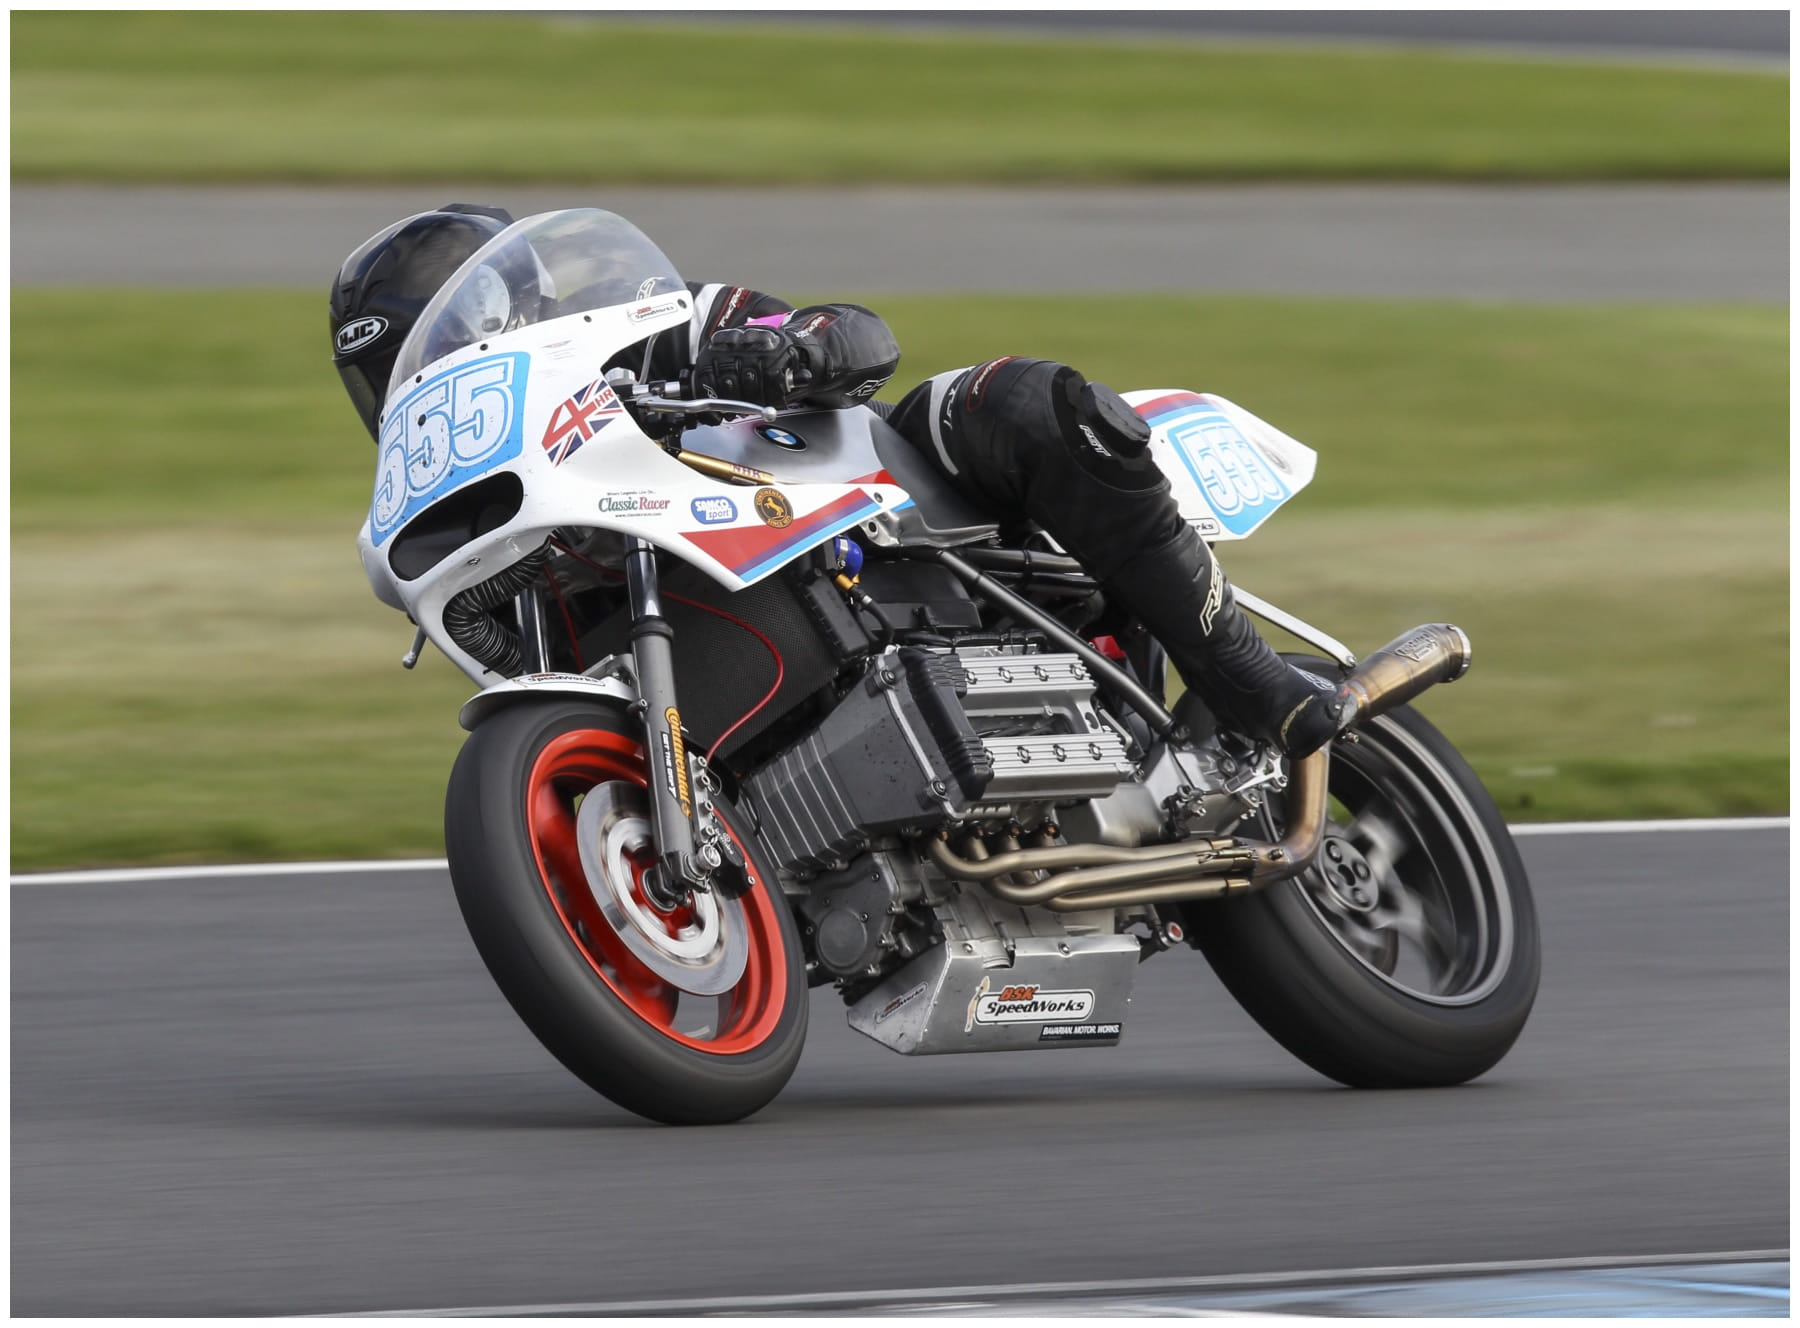 BSK SpeedWorks BMW K100 Endurance Racer, on the way to the Endurance legends 4hr race podium